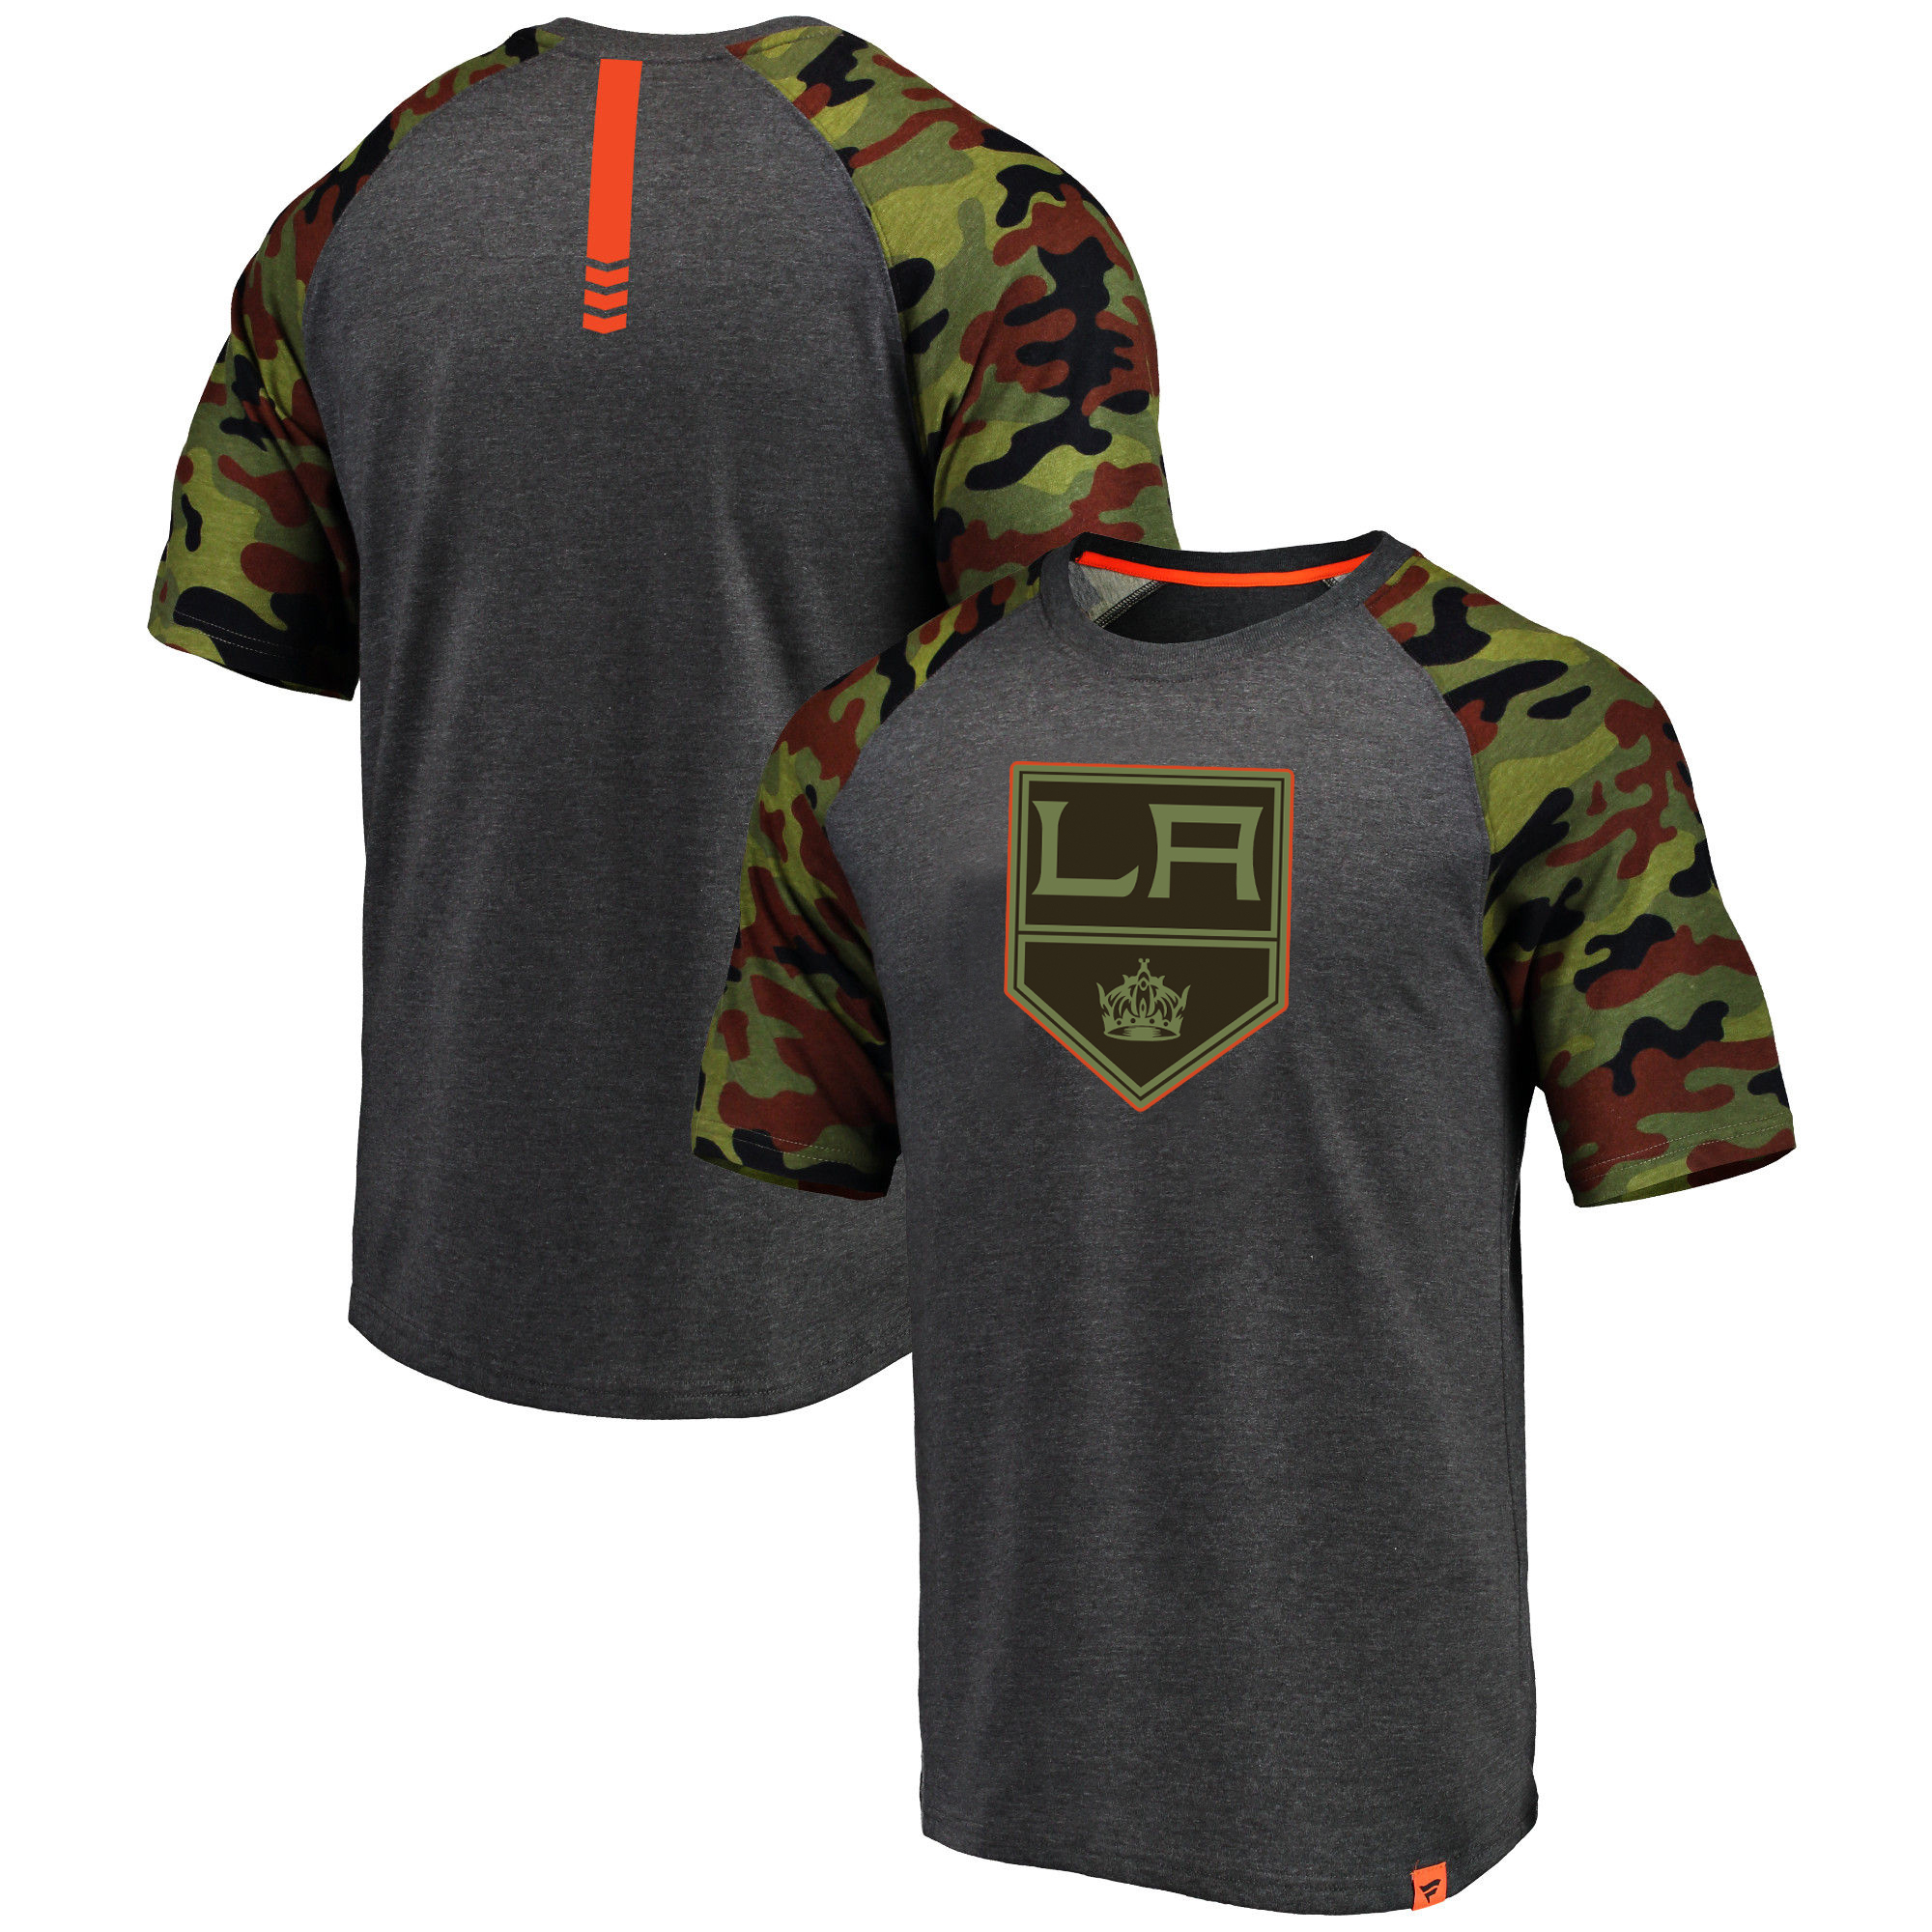 Los Angeles Kings Fanatics Braned Heathered Gray/Camo Recon Camo Raglan T-Shirt